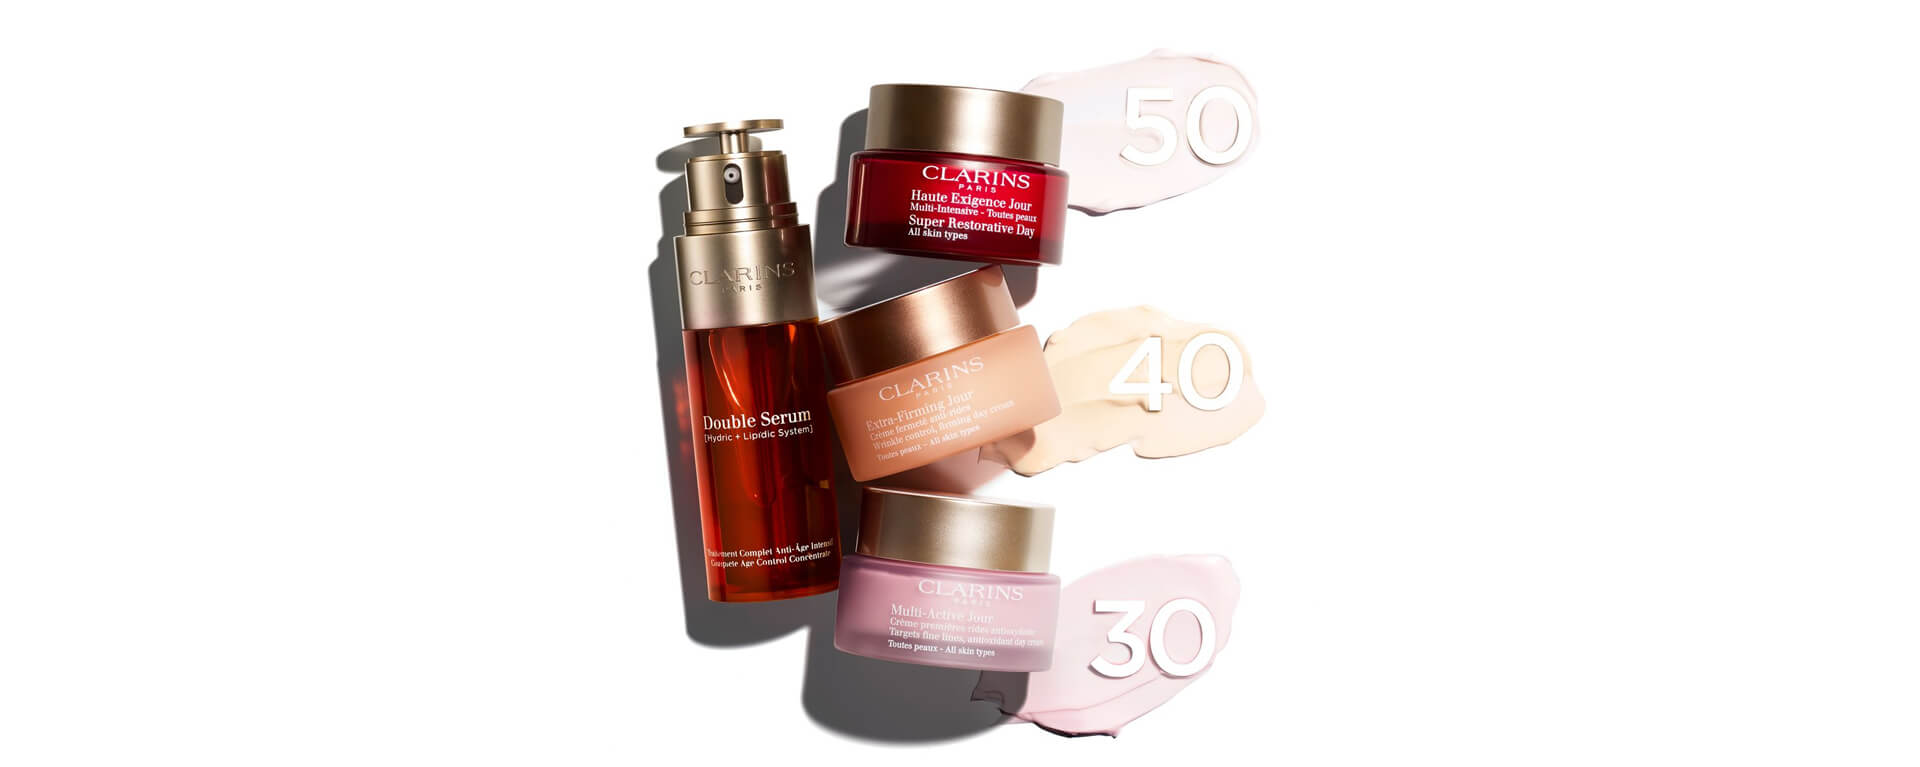 clarins-collection-banner-3